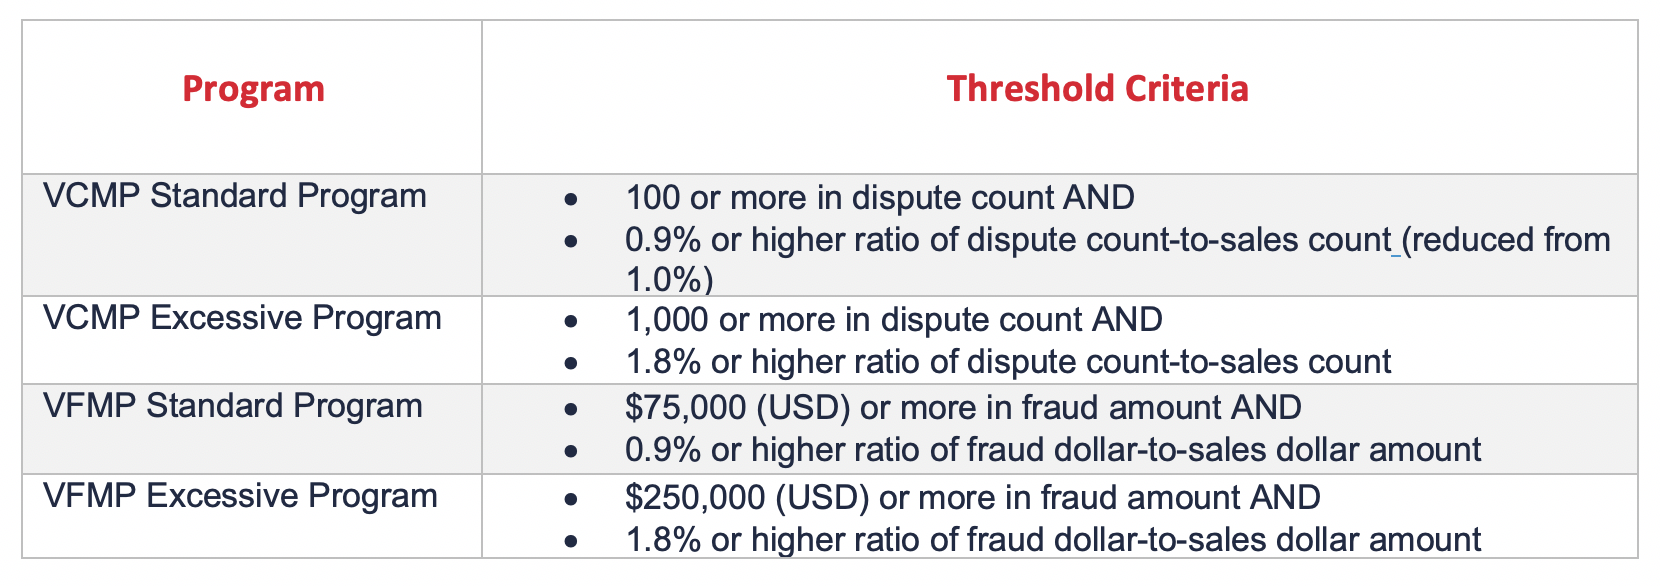 table showing visa's card brand thresholds